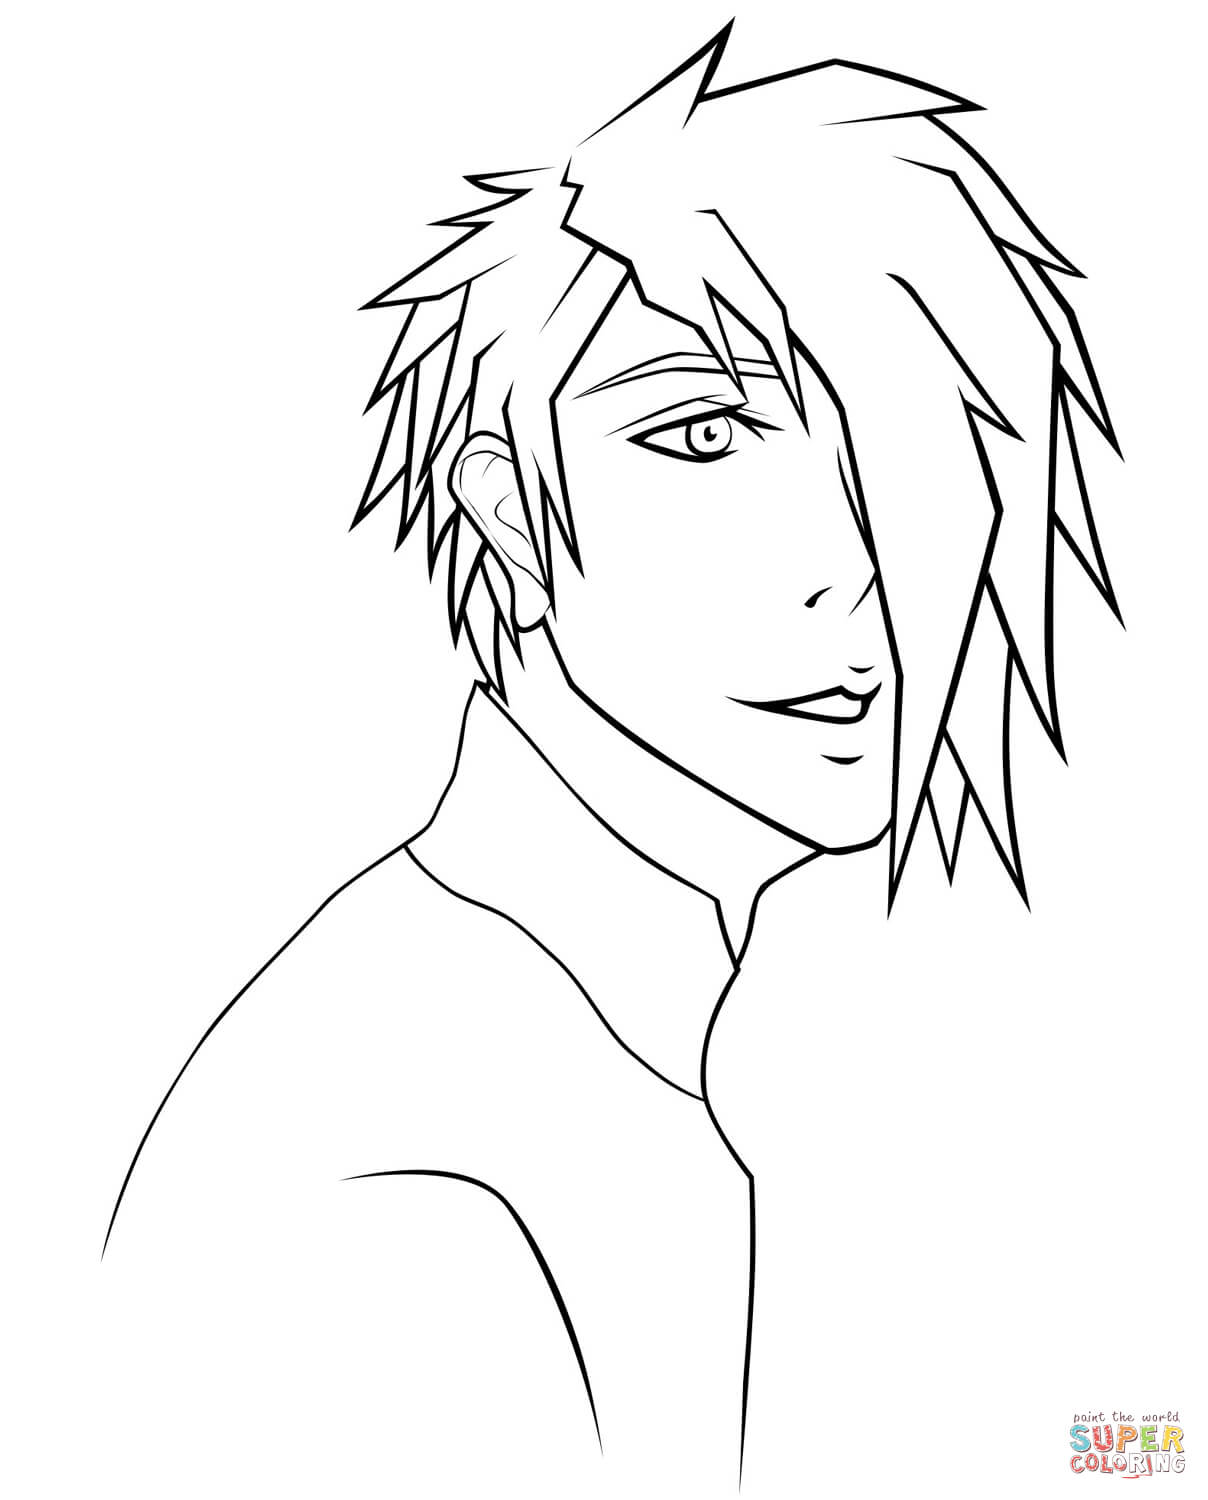 boy easy anime coloring pages anime boy coloring pages coloring pages to download and coloring anime boy pages easy